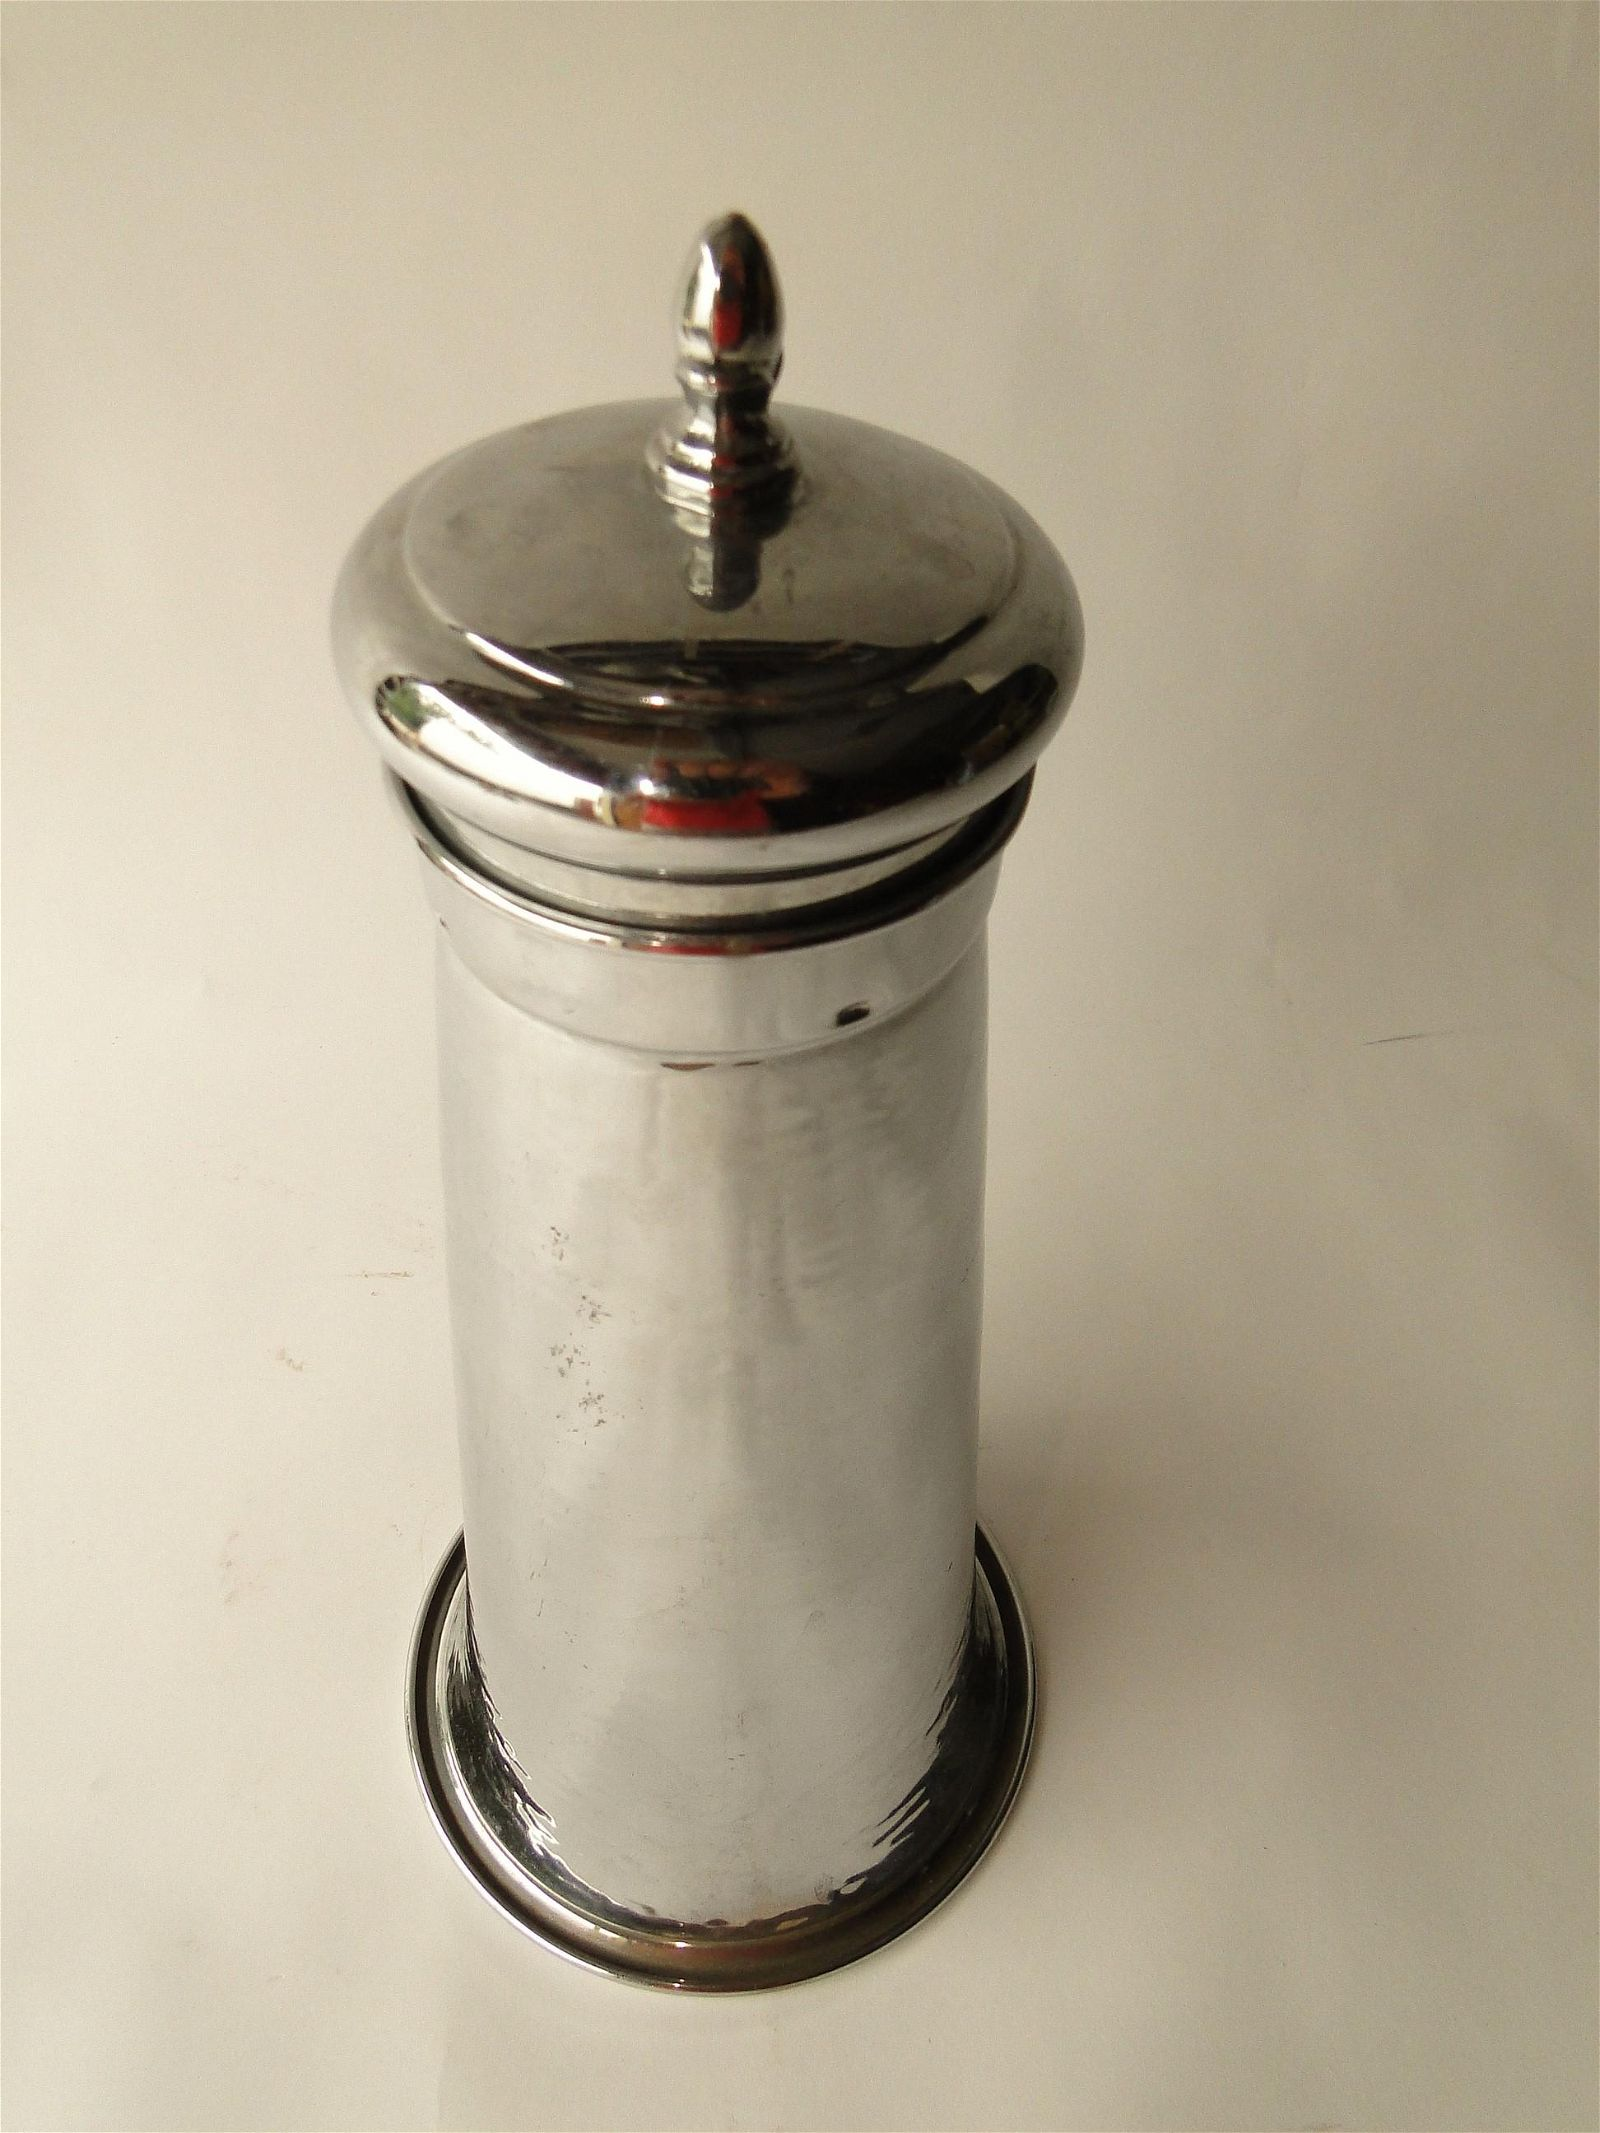 VINTAGE SHAKER MIXING CUP LIGHTHOUSE DESIGN